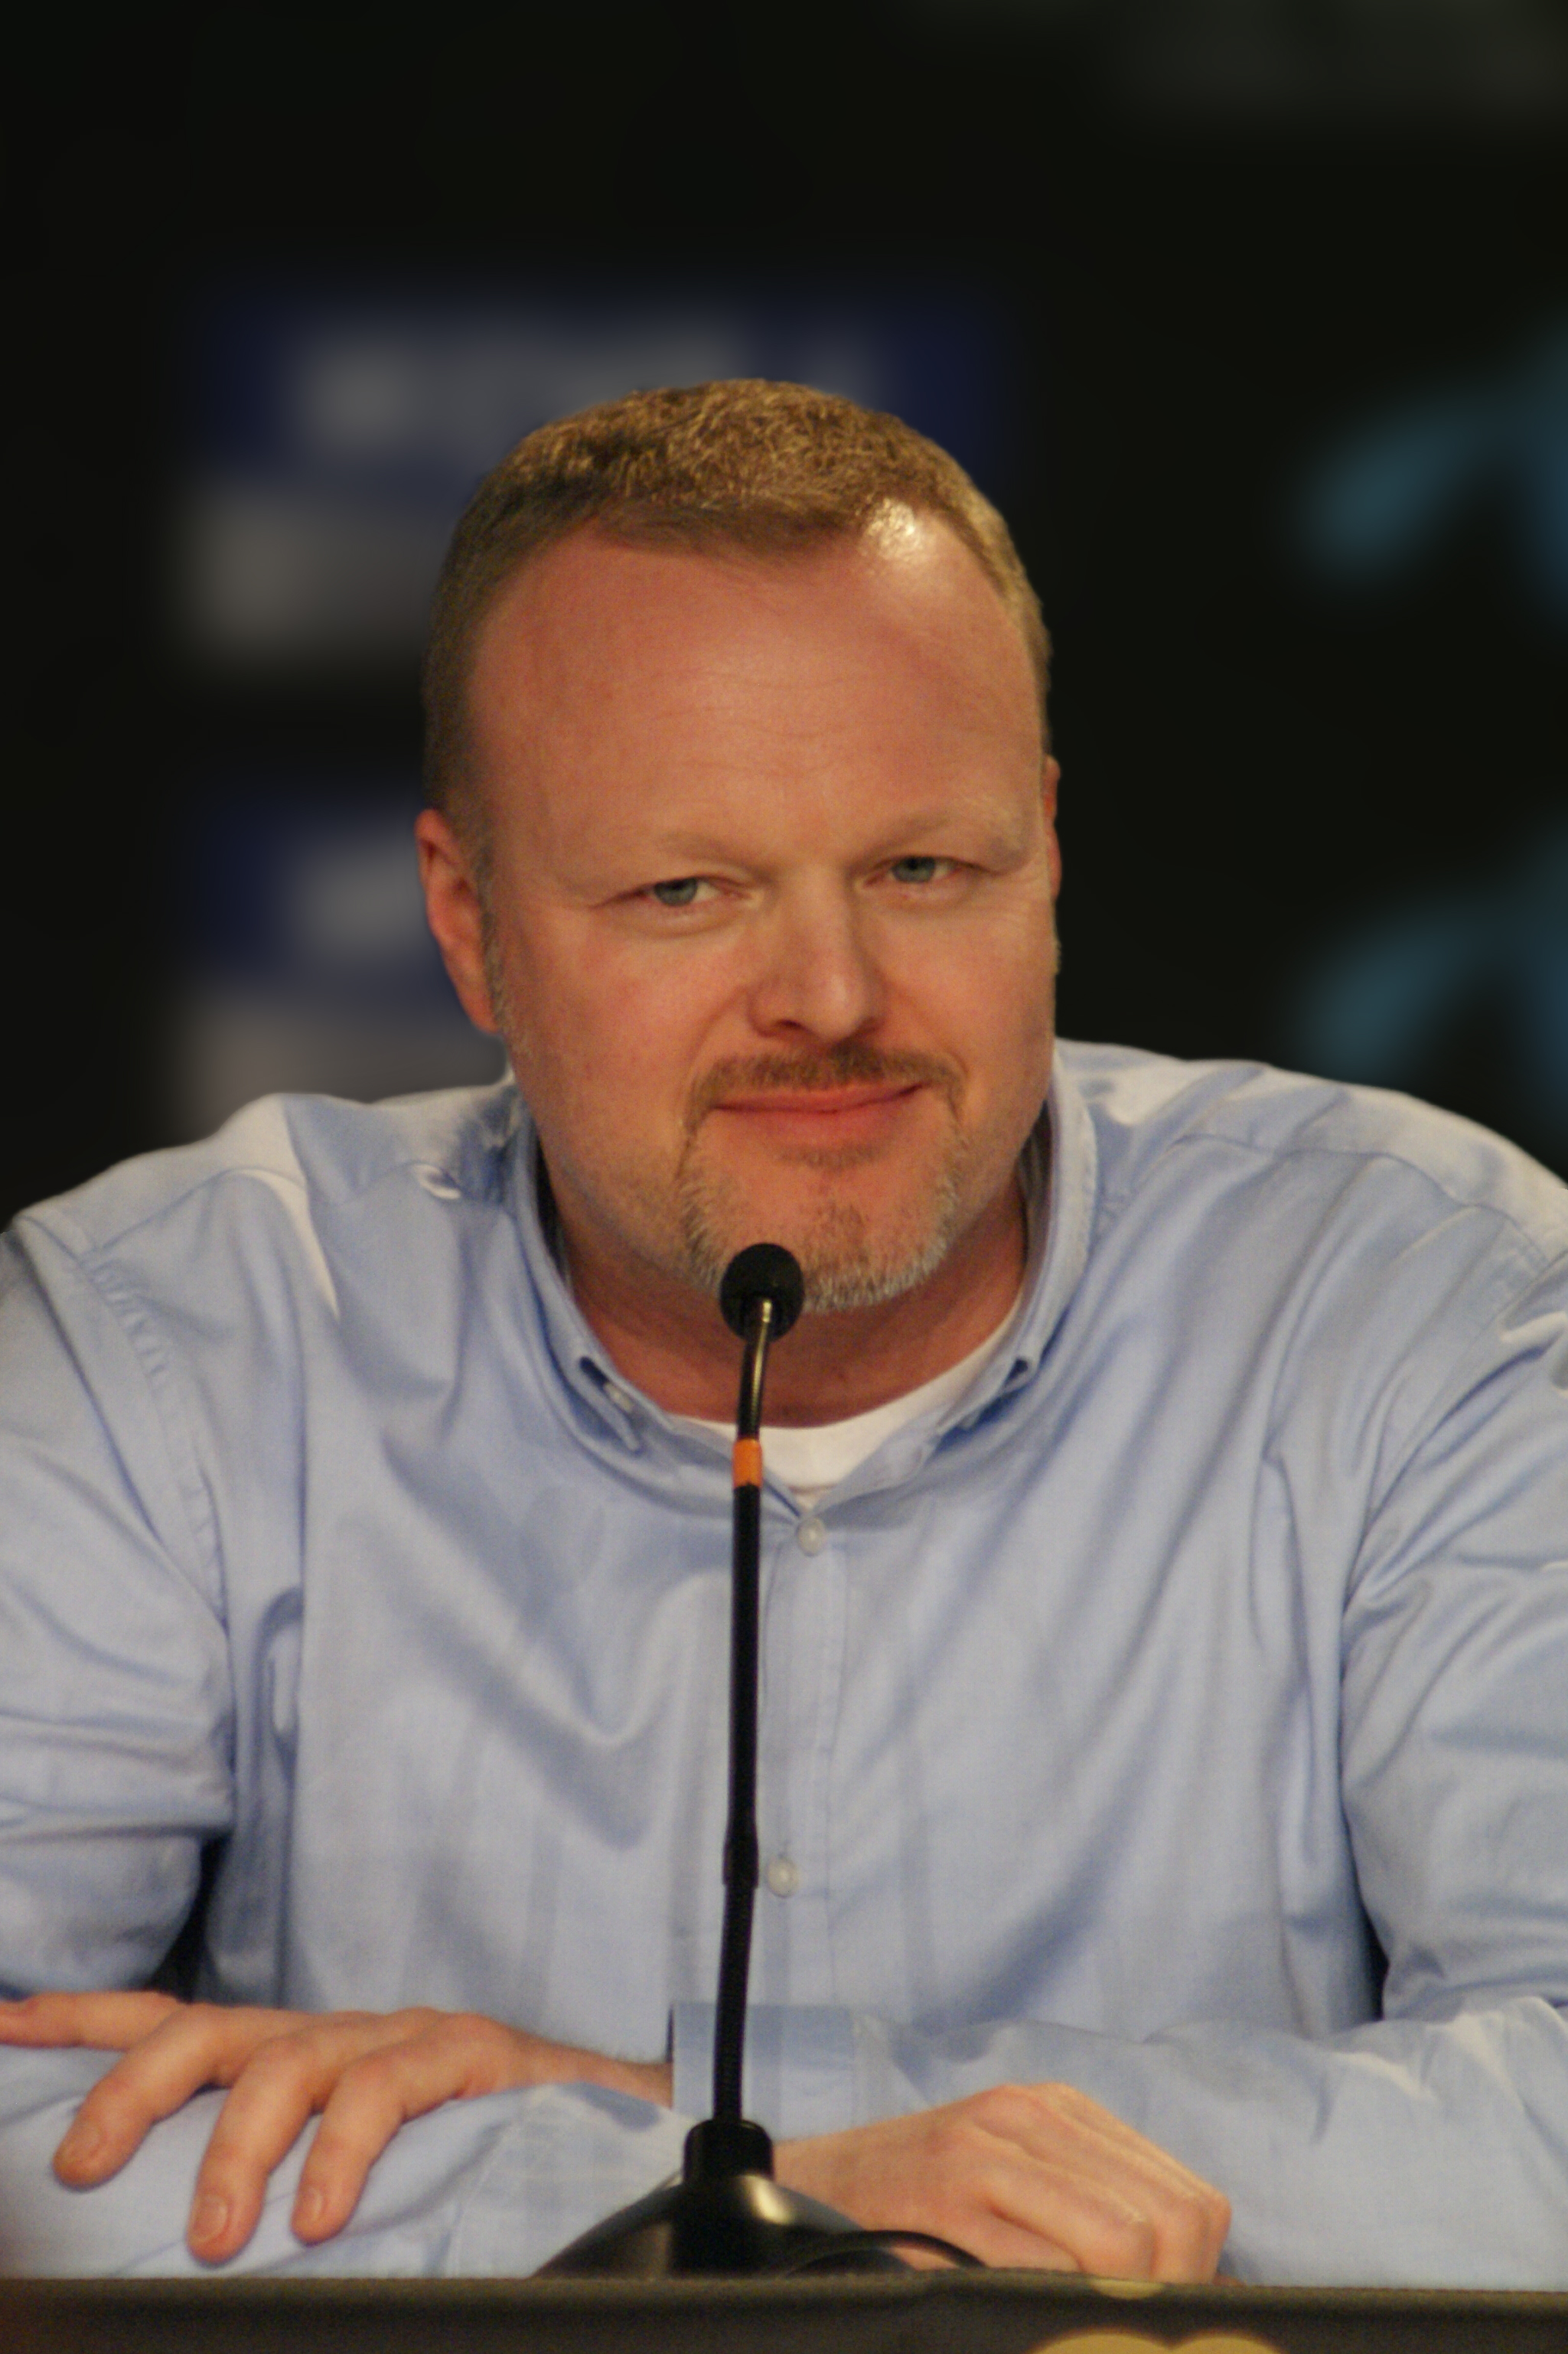 The TV personality Stefan Raab